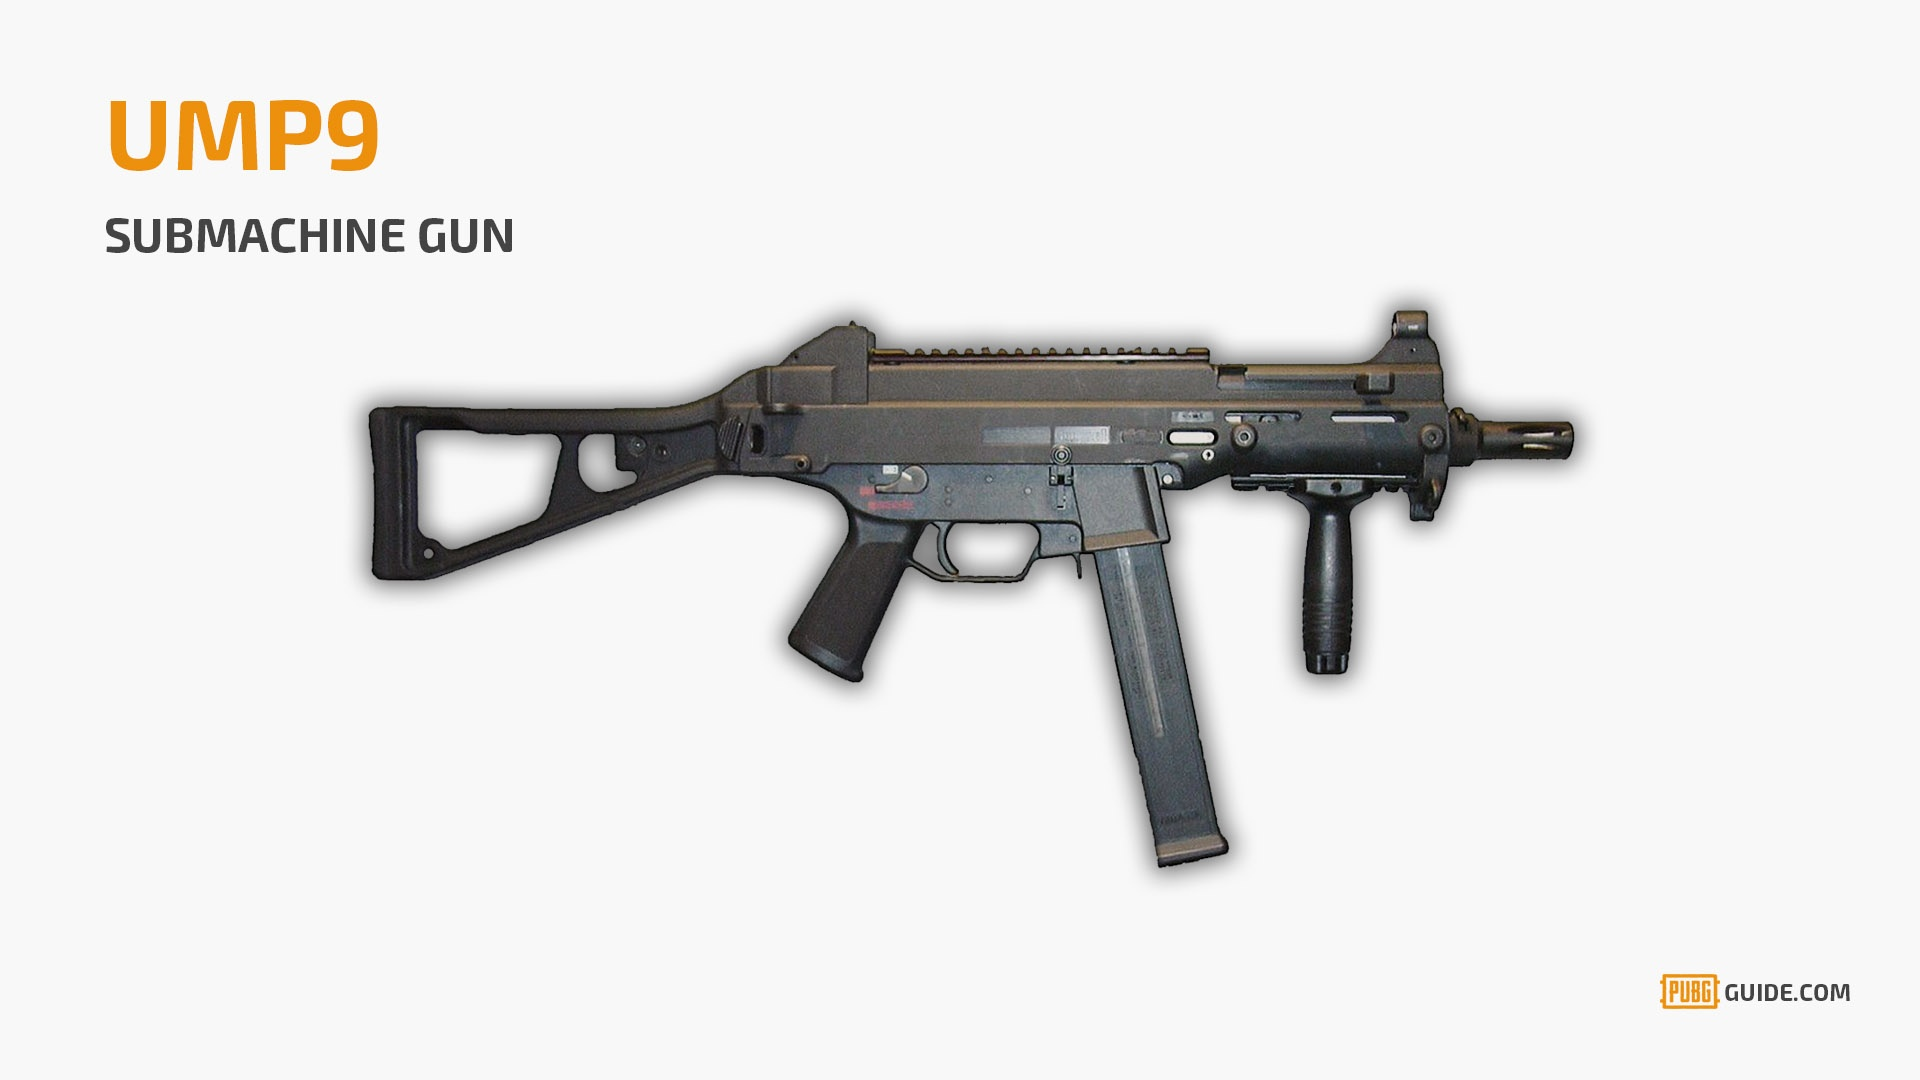 If For Some Reason You Cannot Find The Tommy Gun, Then Try To Look Out For  The UMP9 Submachine Gun. It Is The Second Most Powerful SMG After The Tommy  Gun, ...